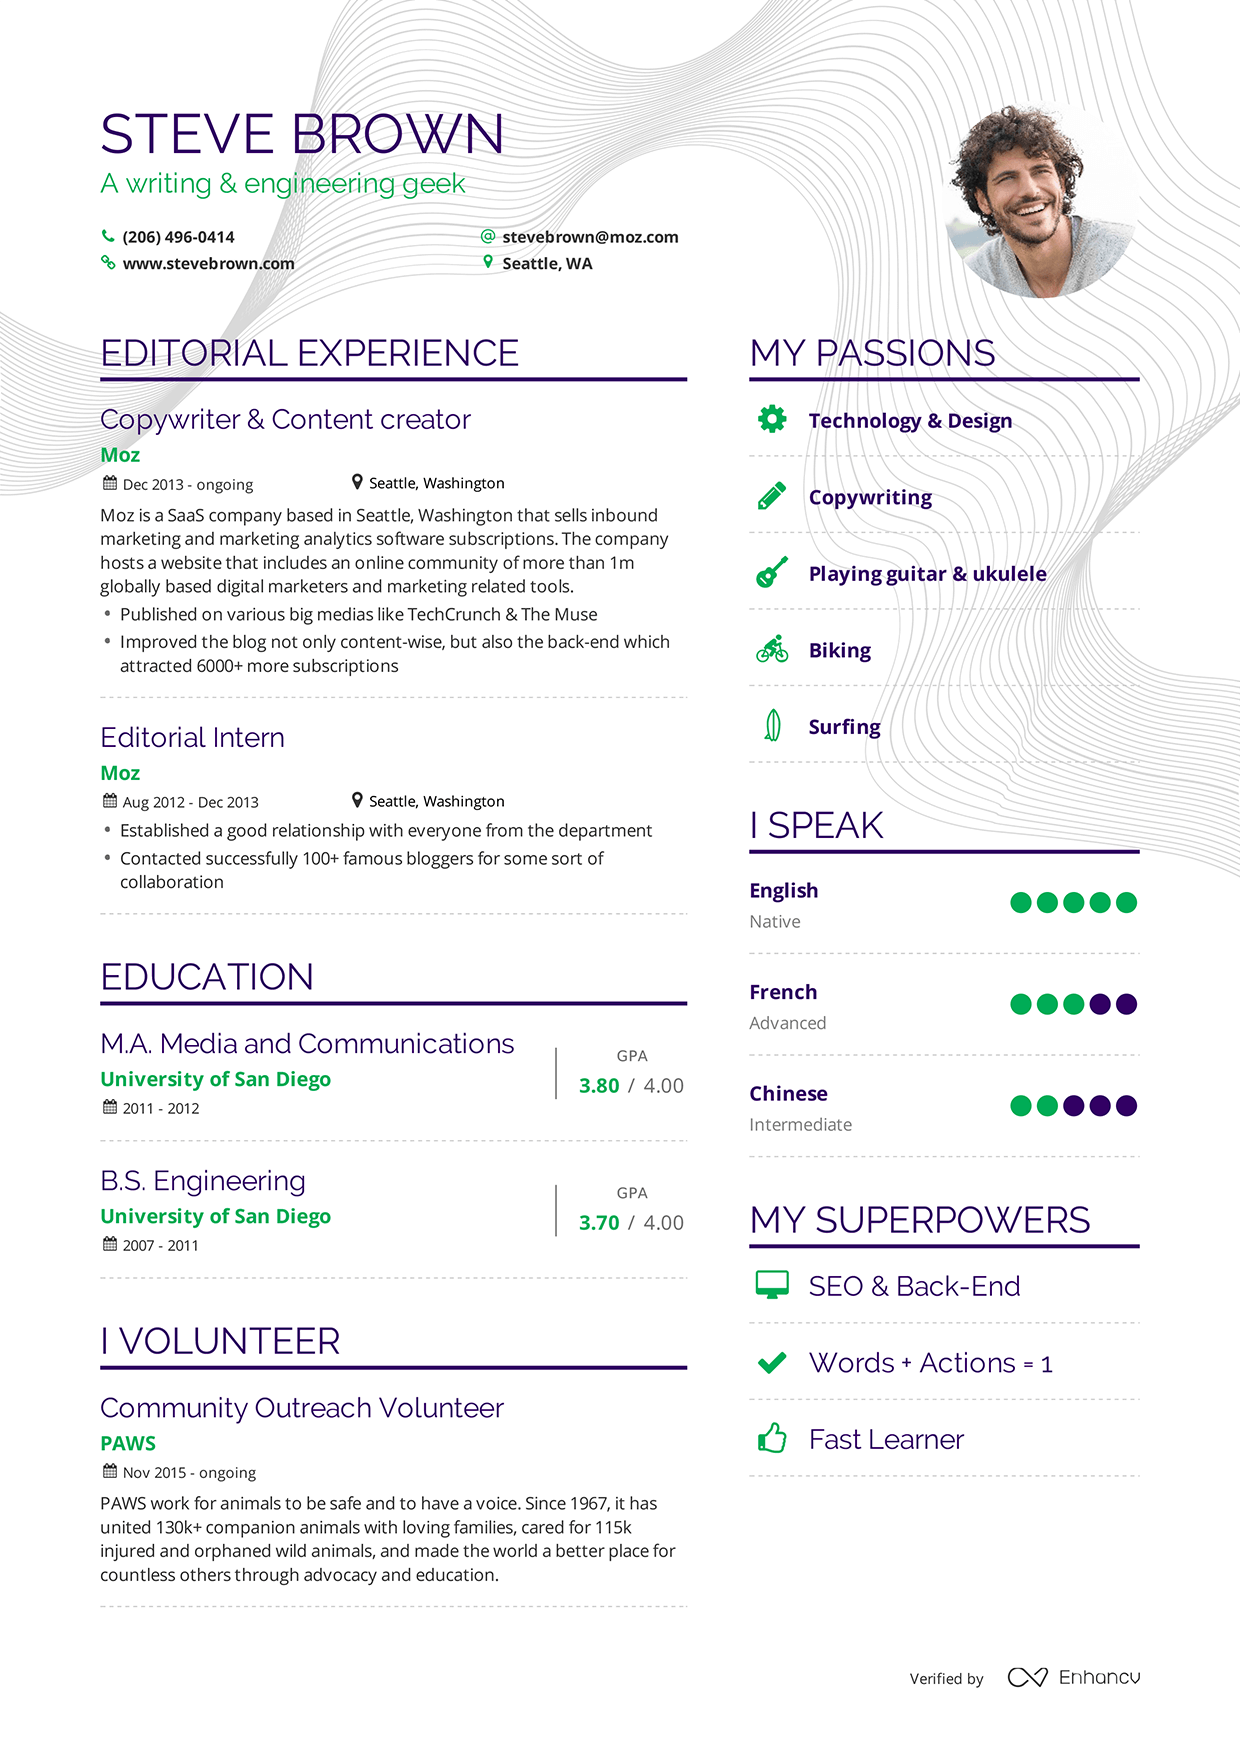 Charming Examples Of Resumes By Enhancv With Steve Jobs Resume